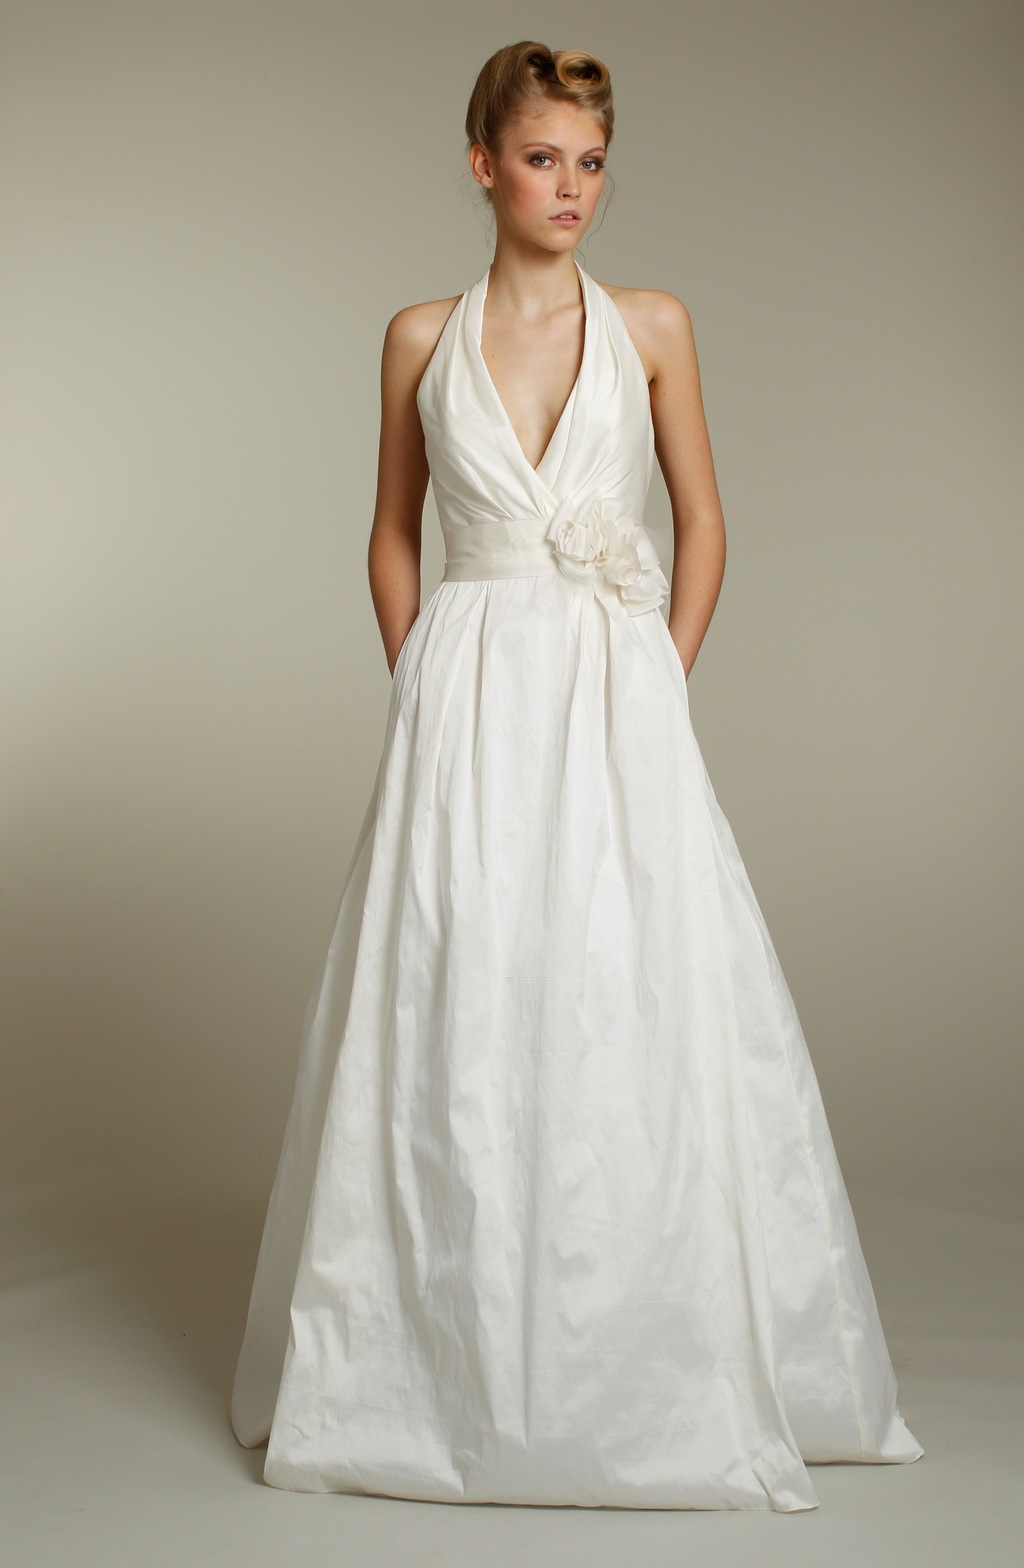 Classic Ivory Halter A Line Wedding Dress With Pockets And